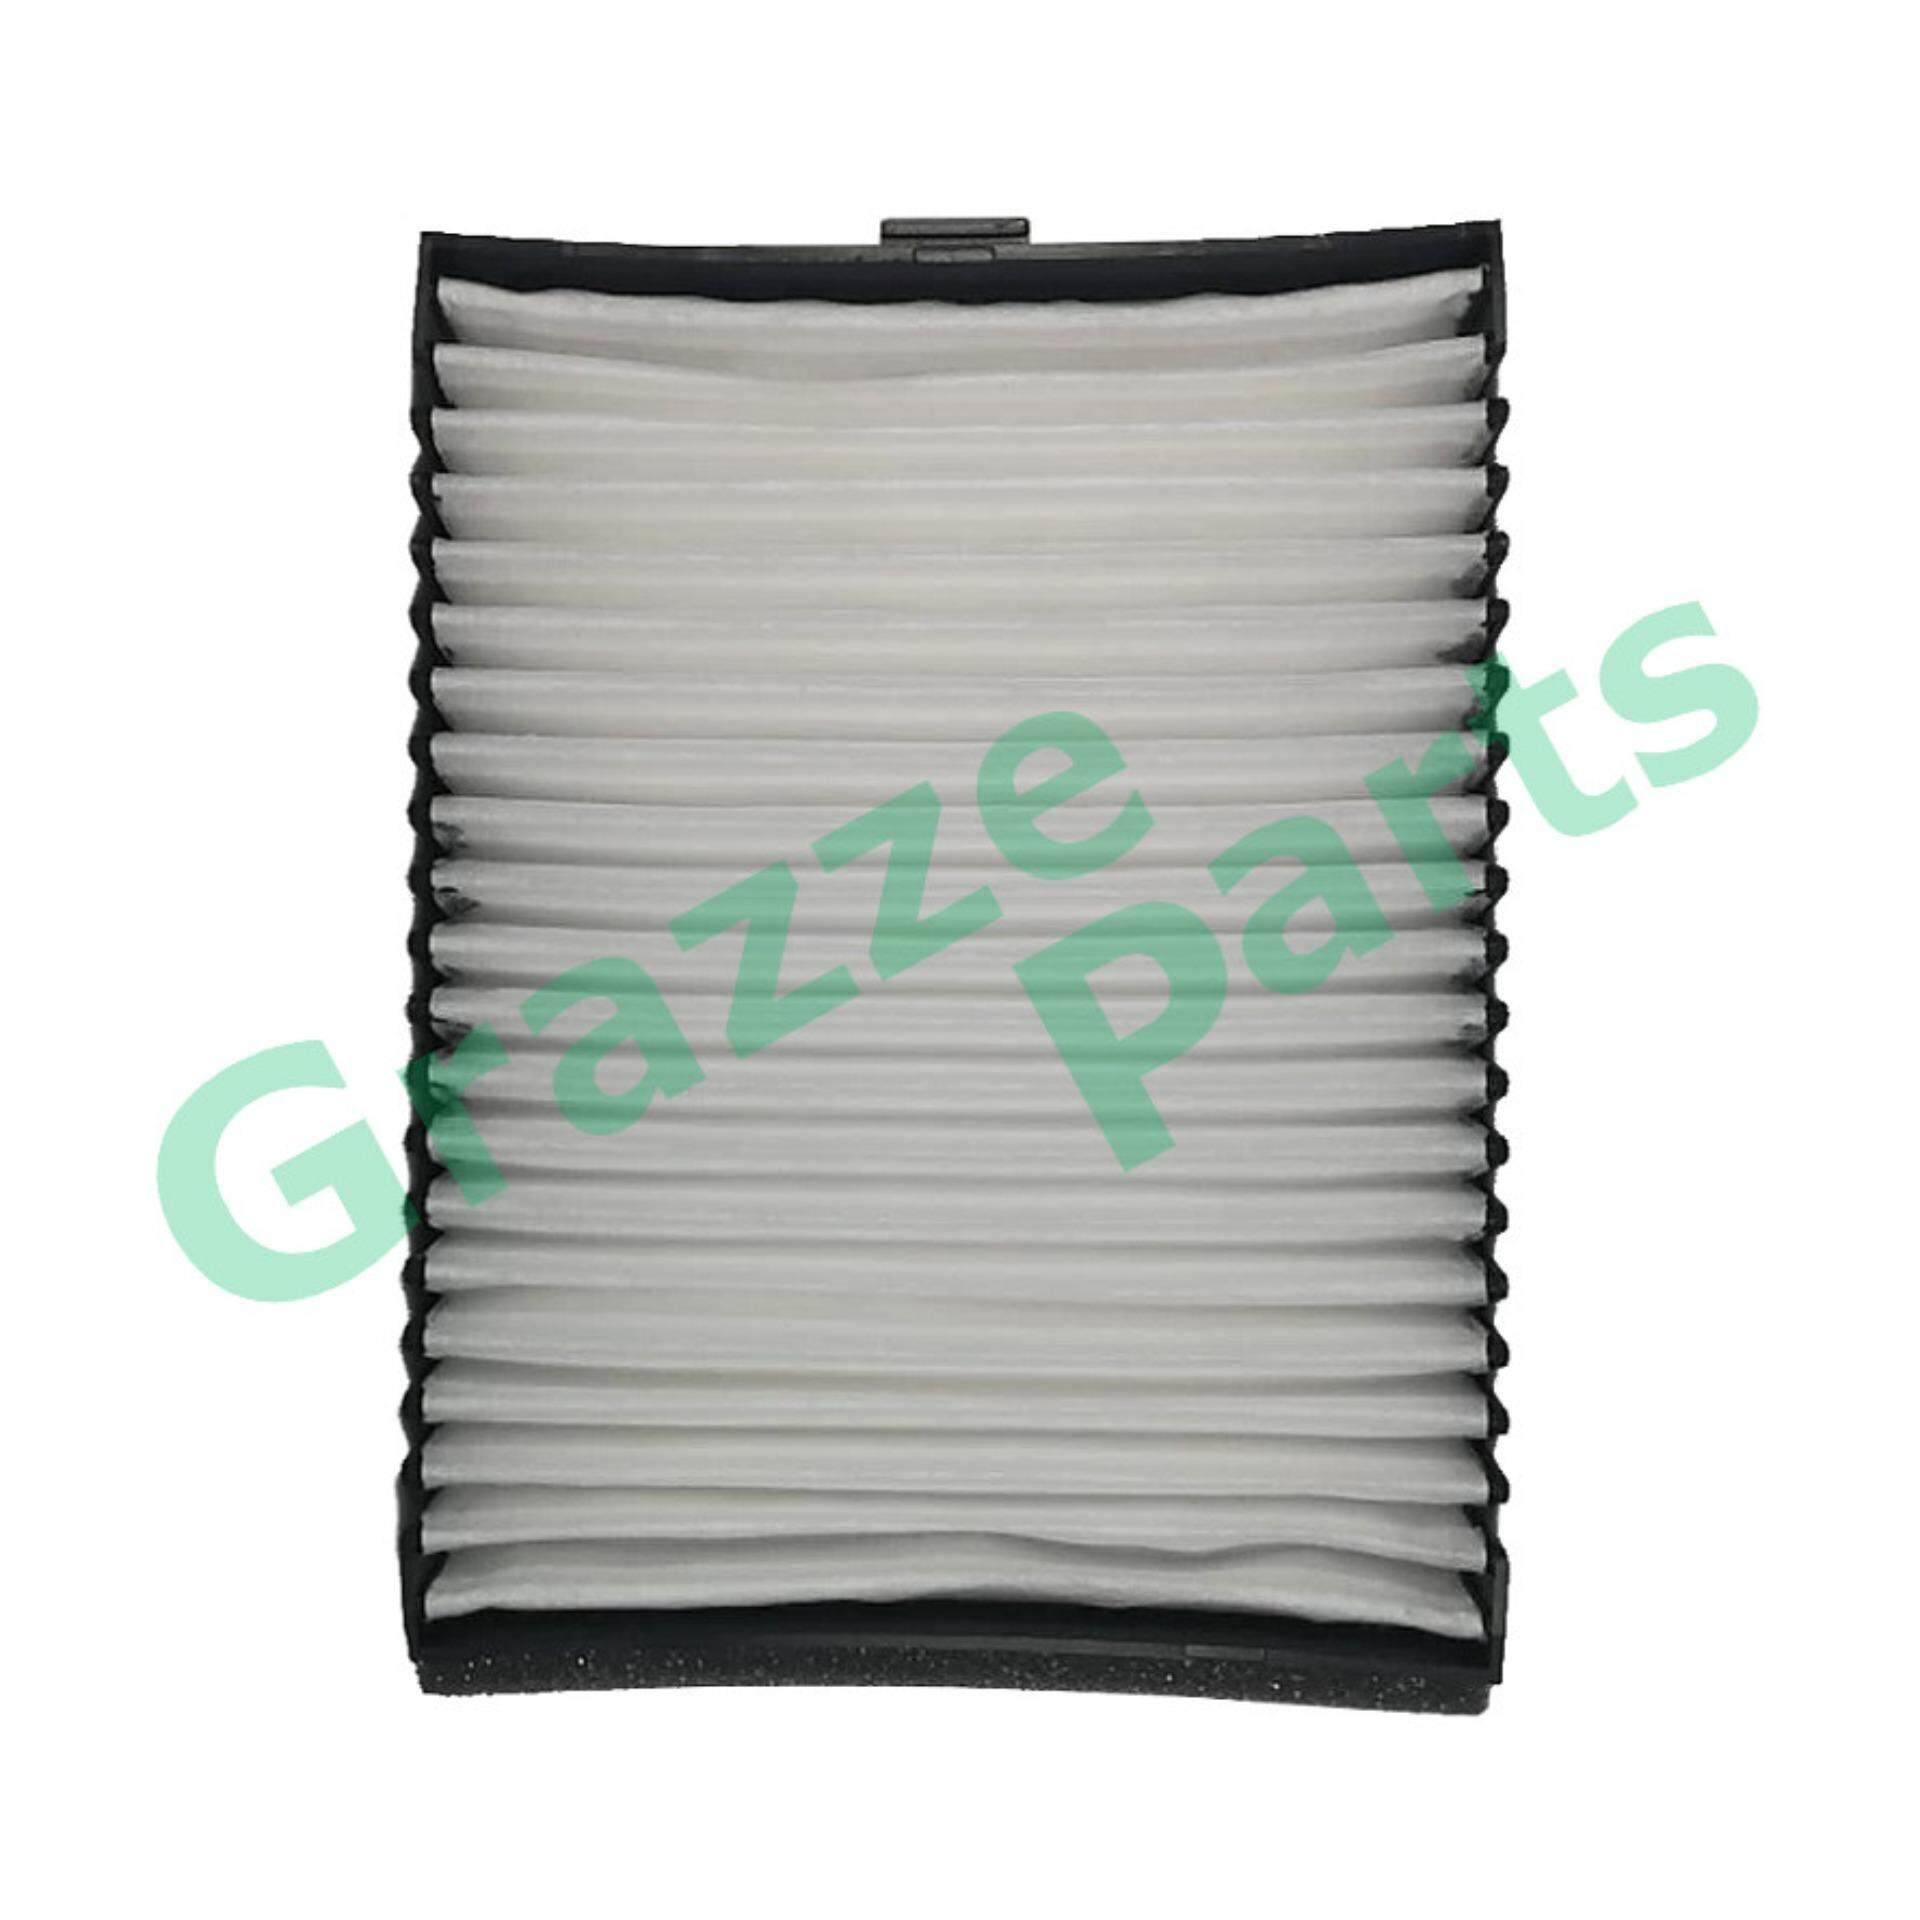 Cabin Air Filter for Proton Gen 2 Gen2, Persona 2007-2015, Satria NEO